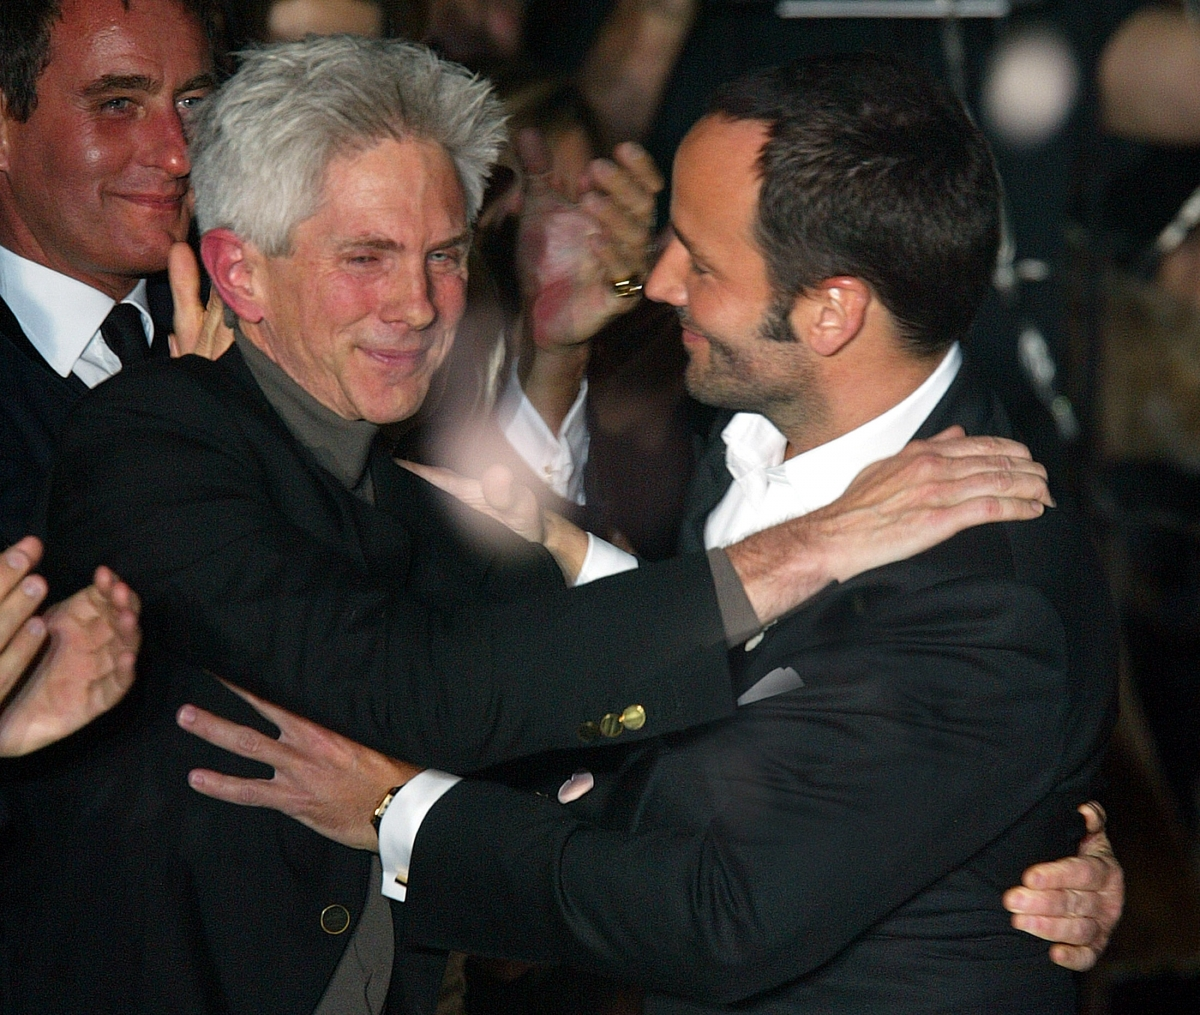 american-fashion-designer-tom-ford-has-married-his-longtime-partner-richard-buckley